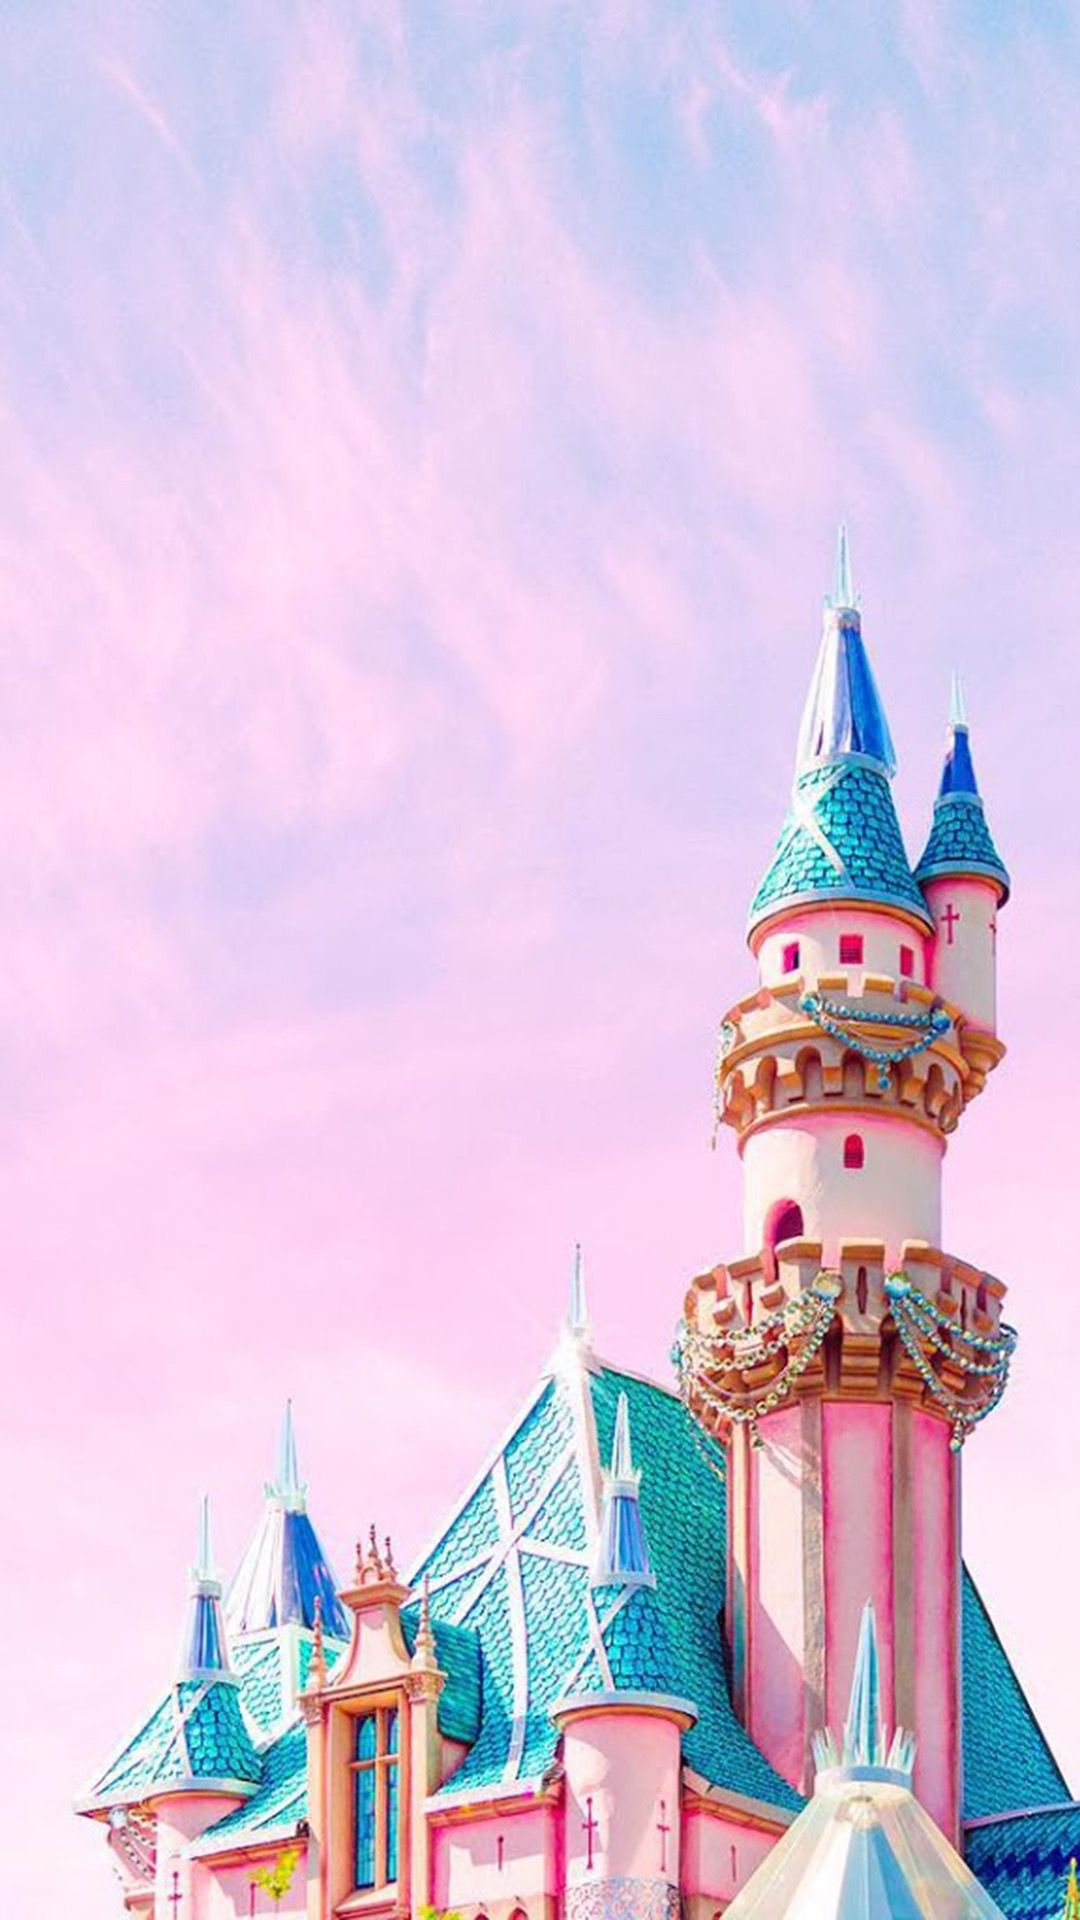 Pin By Diana Huet On Wallpapers Wallpaper Iphone Disney Disney Wallpaper Cute Wallpapers